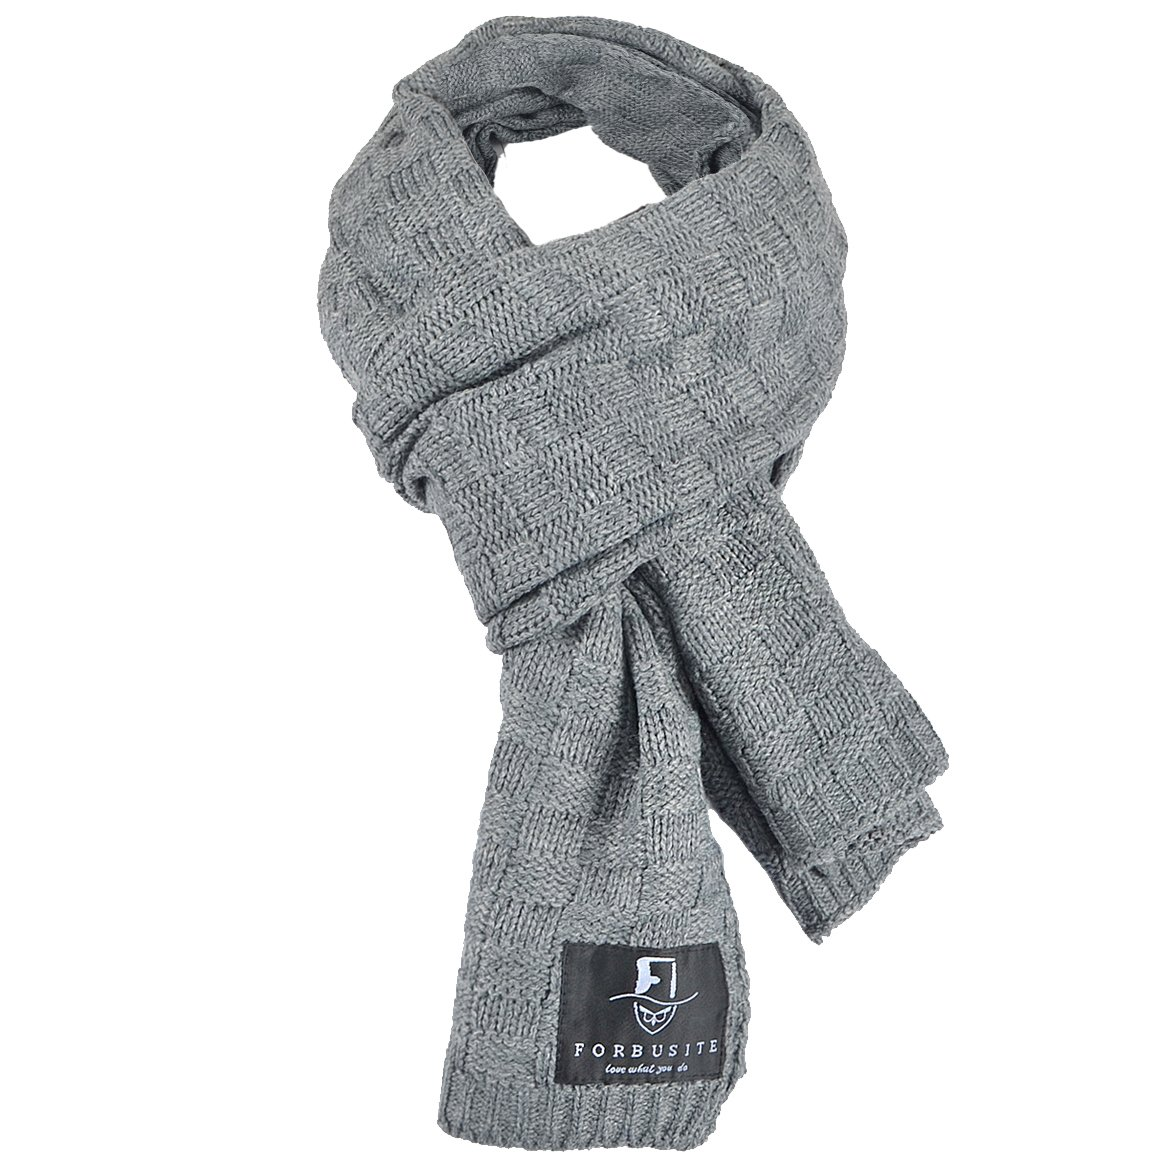 FORBUSITE Stylish Unisex Daily Square Pattern Soft Knitted Winter Scarf E5031 Smoky Grey